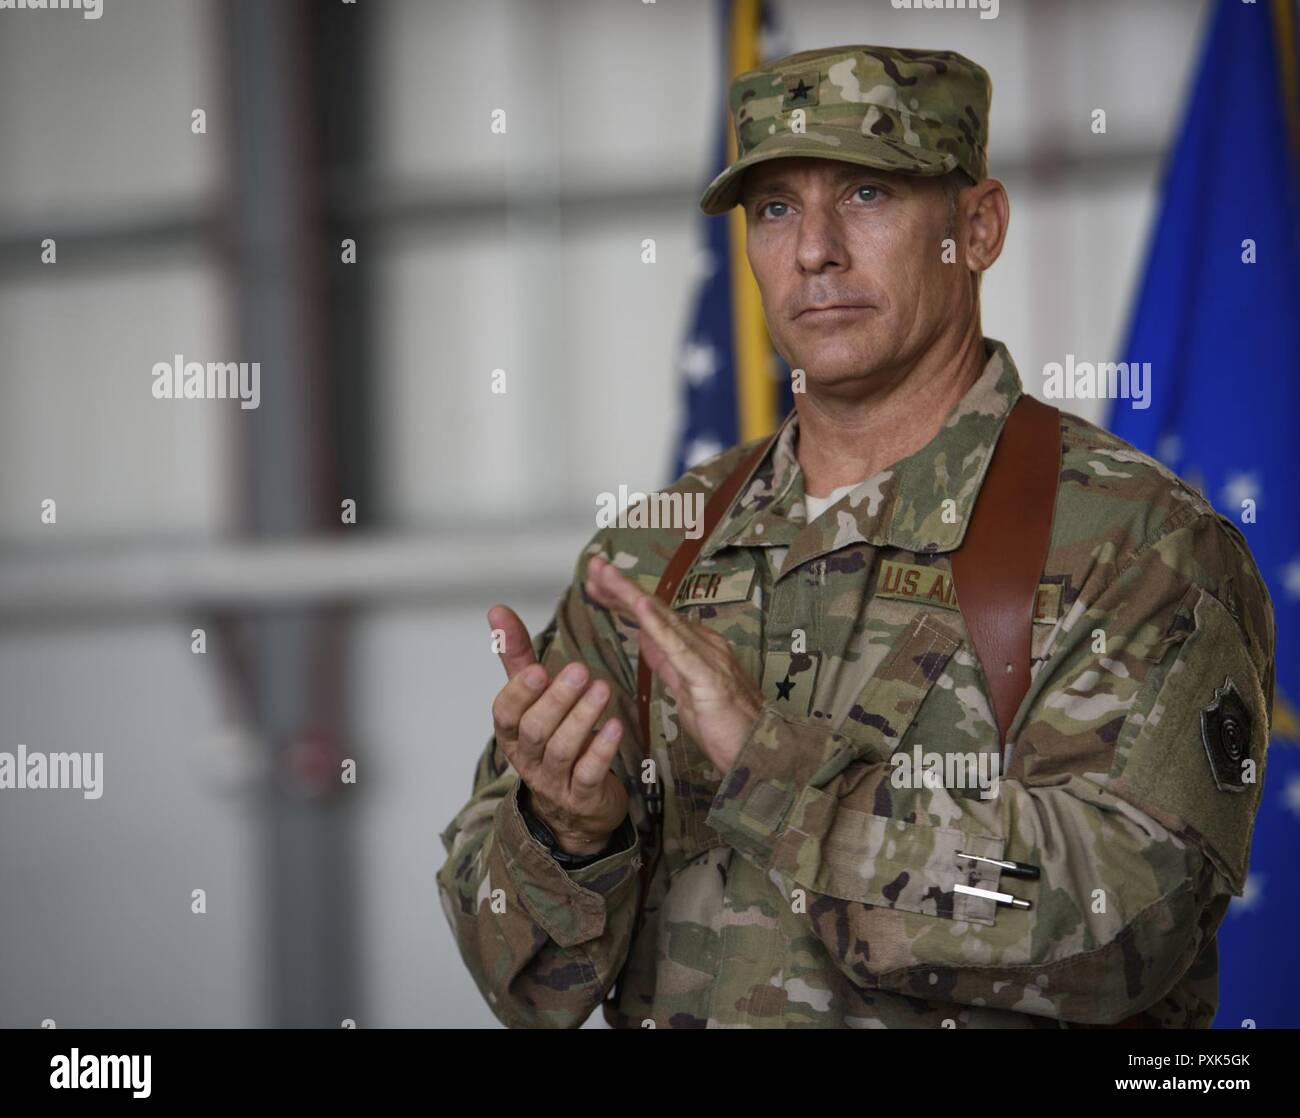 Brig. Gen. Craig Baker, the 455th Air Expeditionary Wing commander, gives a round of applause during a change of command ceremony at Bagram Airfield, Afghanistan, June 3, 2017. As the commander of the 455th AEW, Baker will lead the premier counterterrorism air mission in Afghanistan. The wing's operations enable the NATO Resolute Support mission to successfully train, advise, and assist the military and security forces of Afghanistan, while restricting and deterring the terrorist threat in the region. Stock Photo